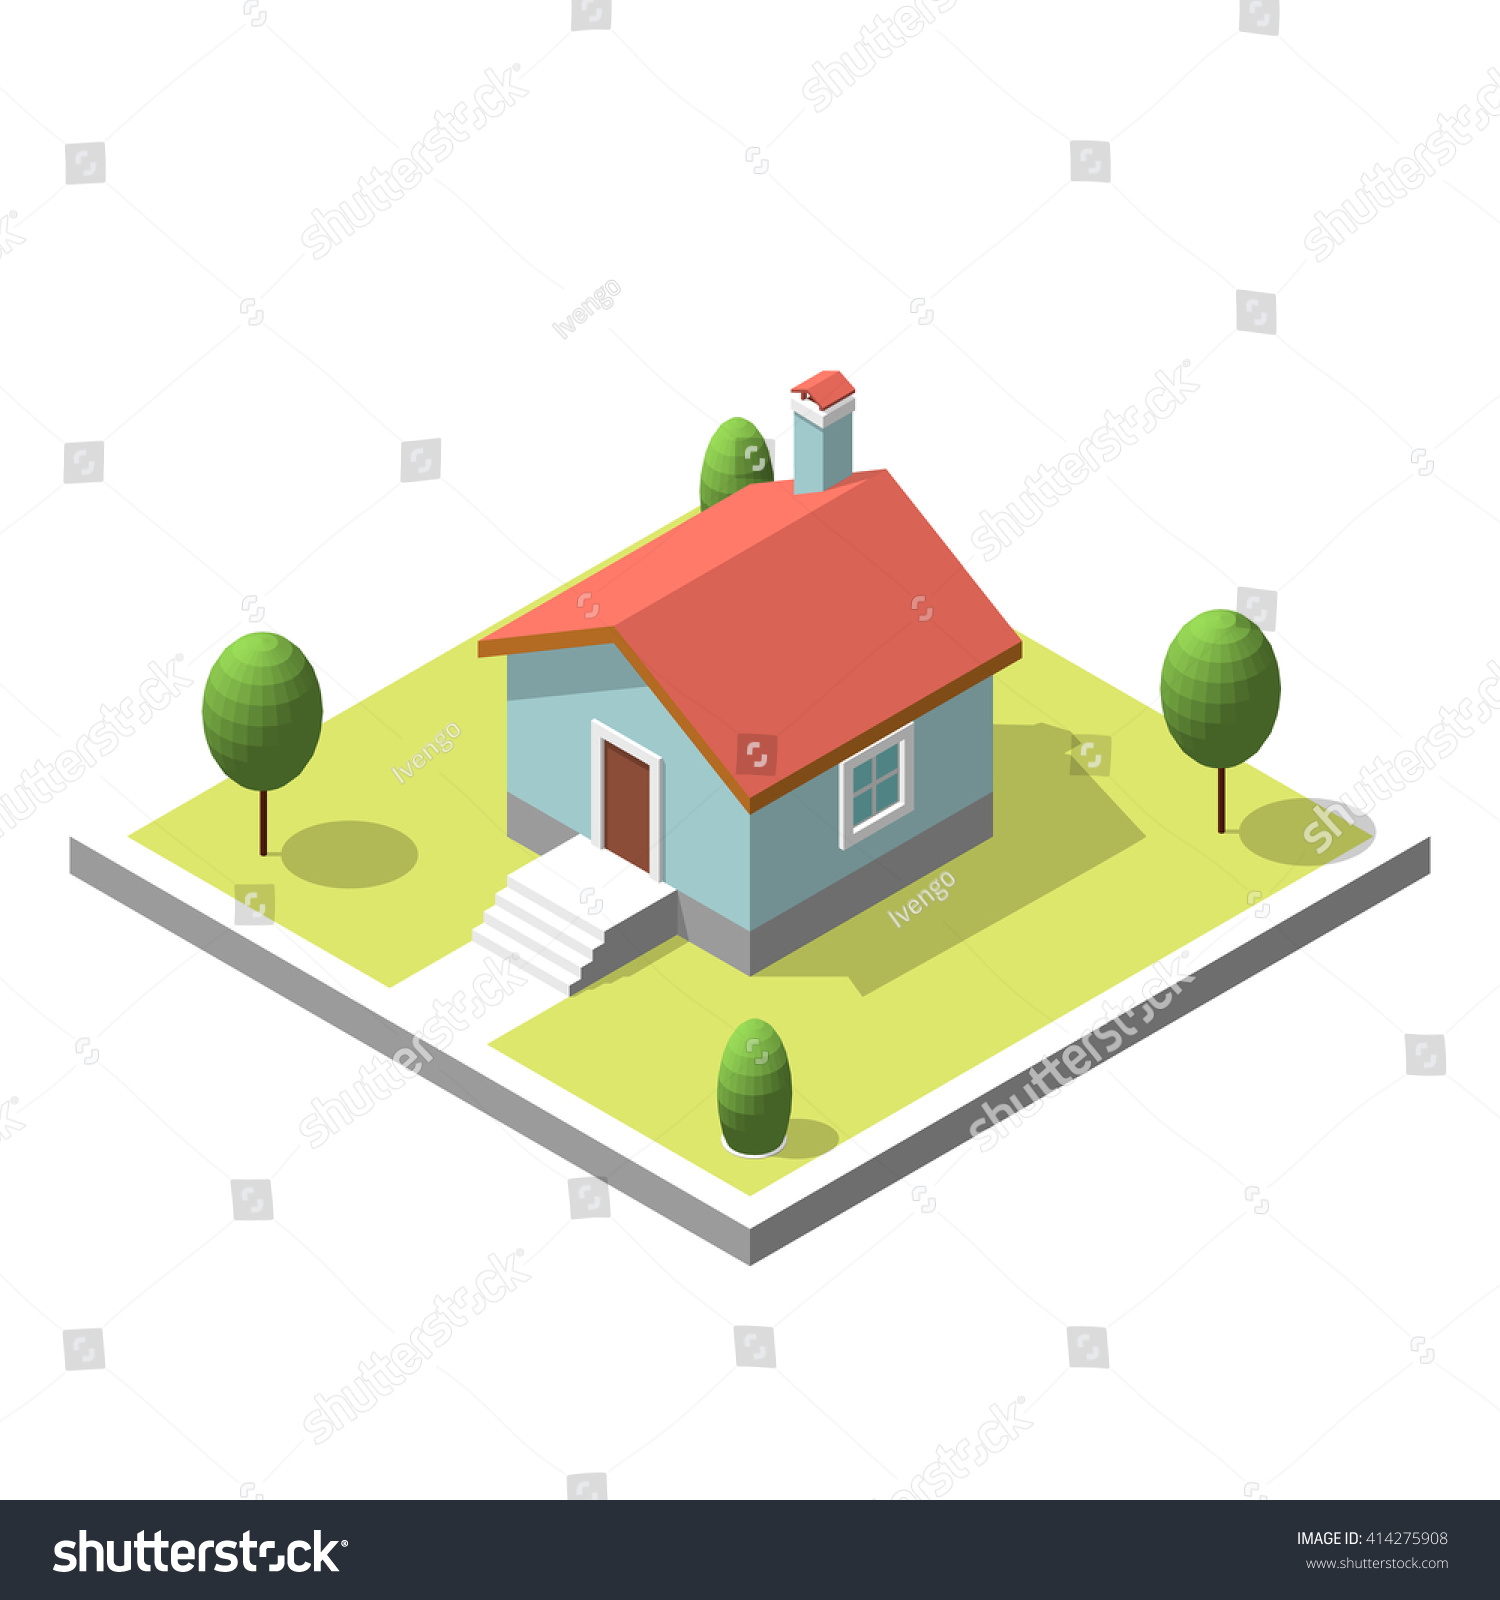 Isometric Building Flat Style Vector Illustration Stock